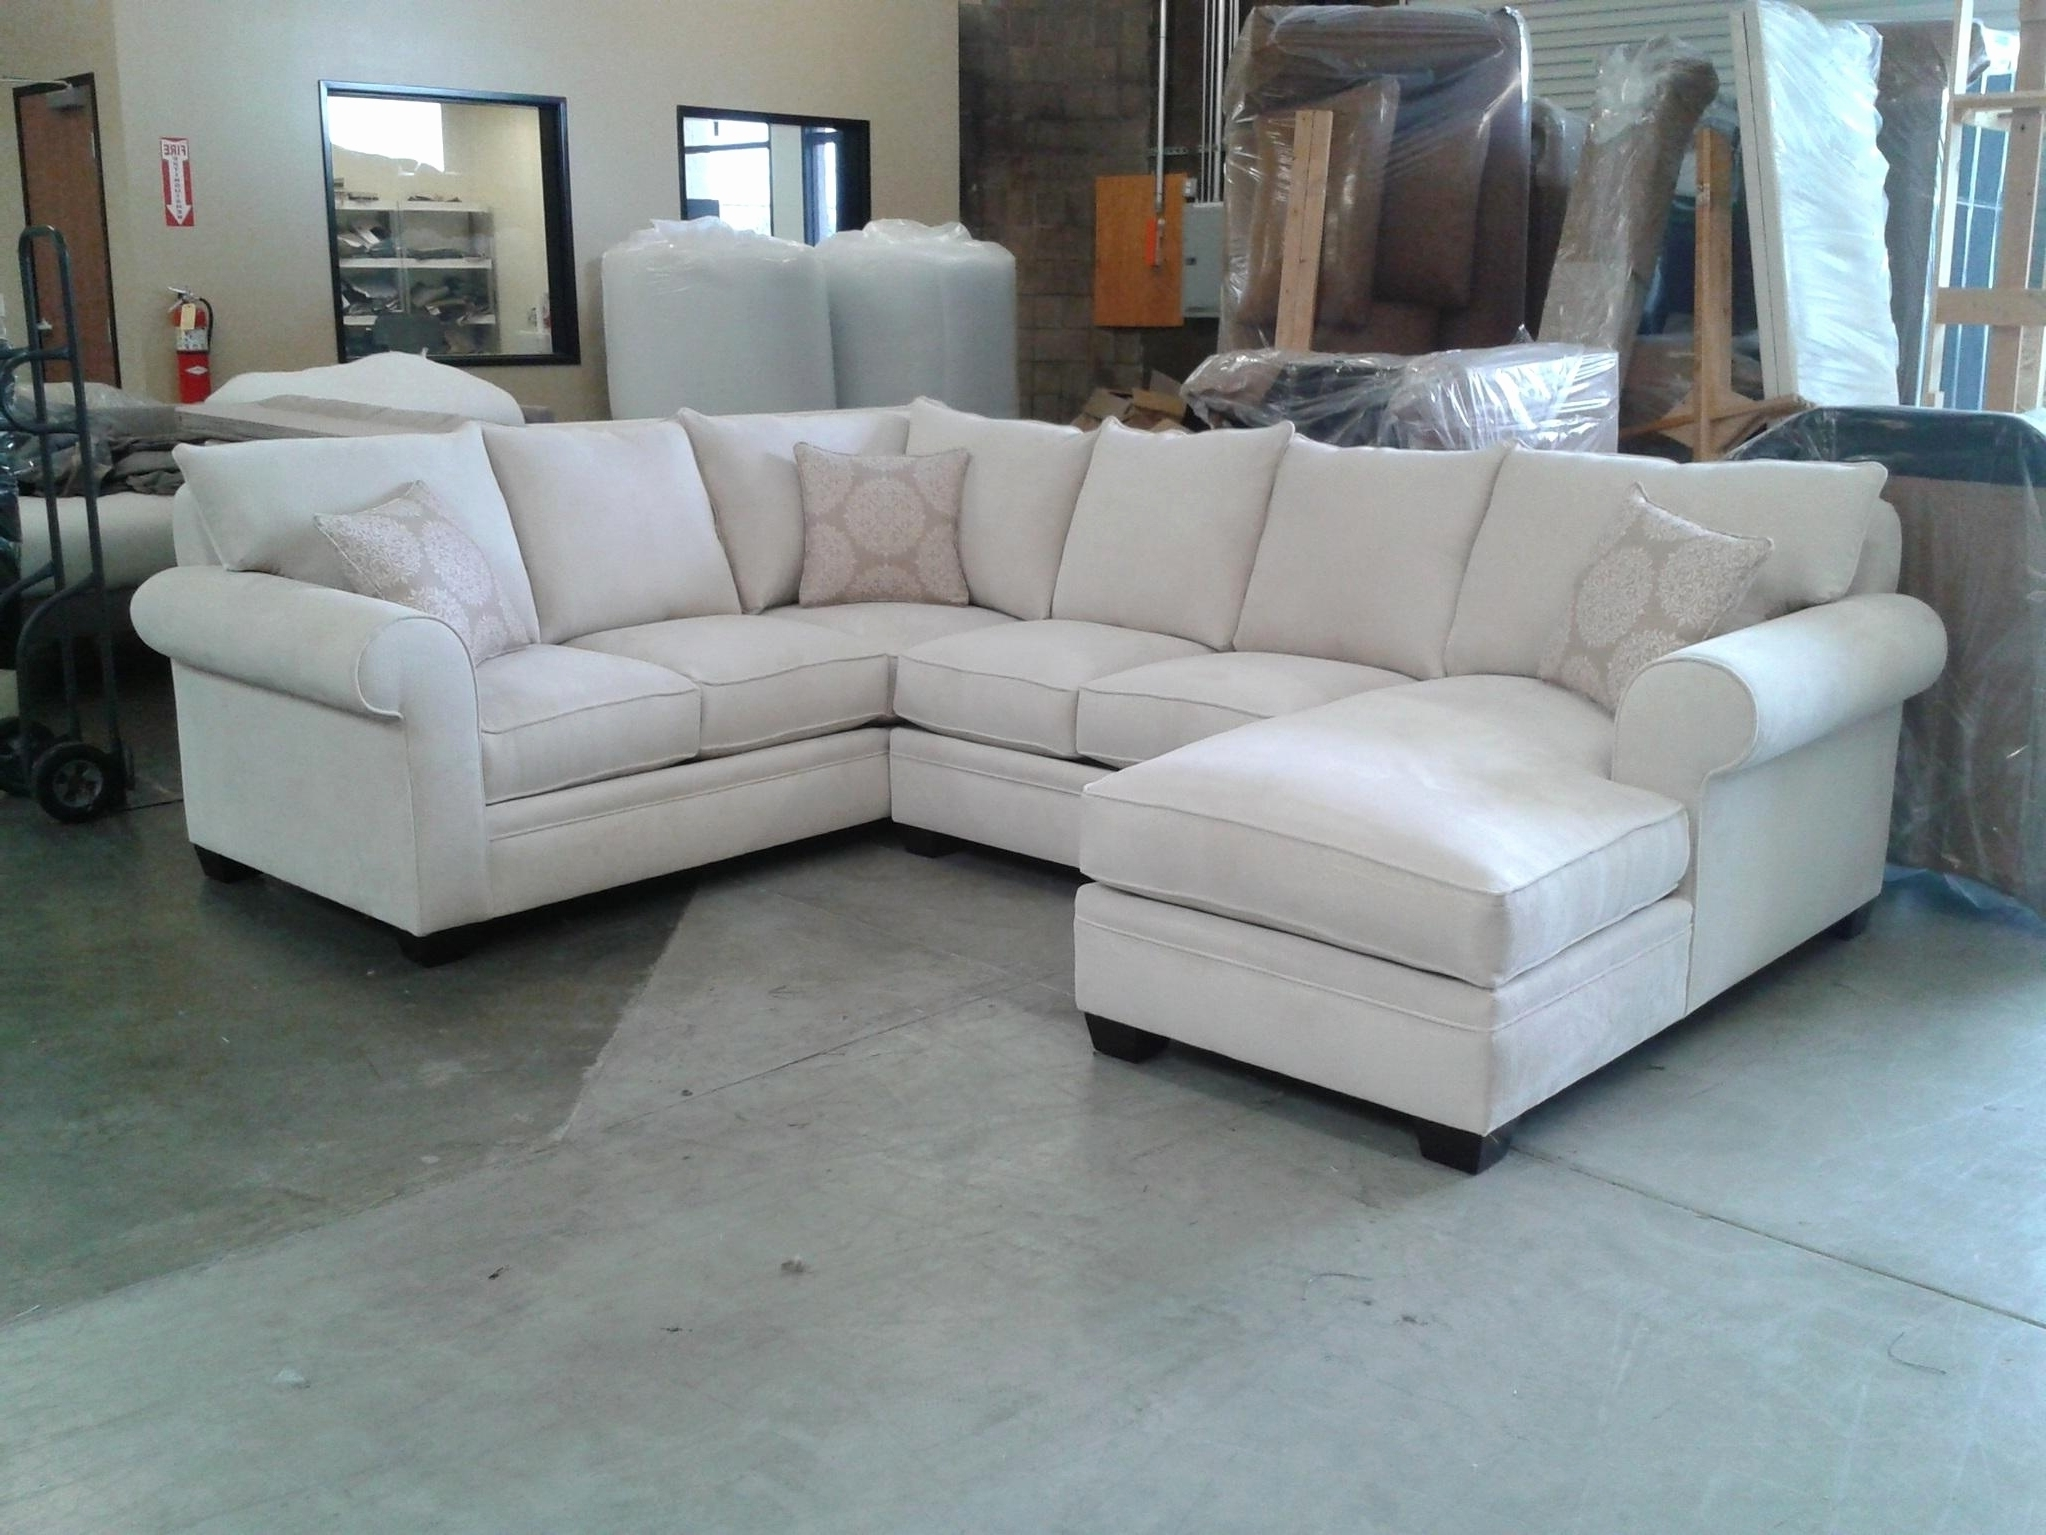 Famous Luxury Down Filled Sectional Sofa 2018 – Couches And Sofas Ideas Throughout Down Sectional Sofas (View 17 of 20)